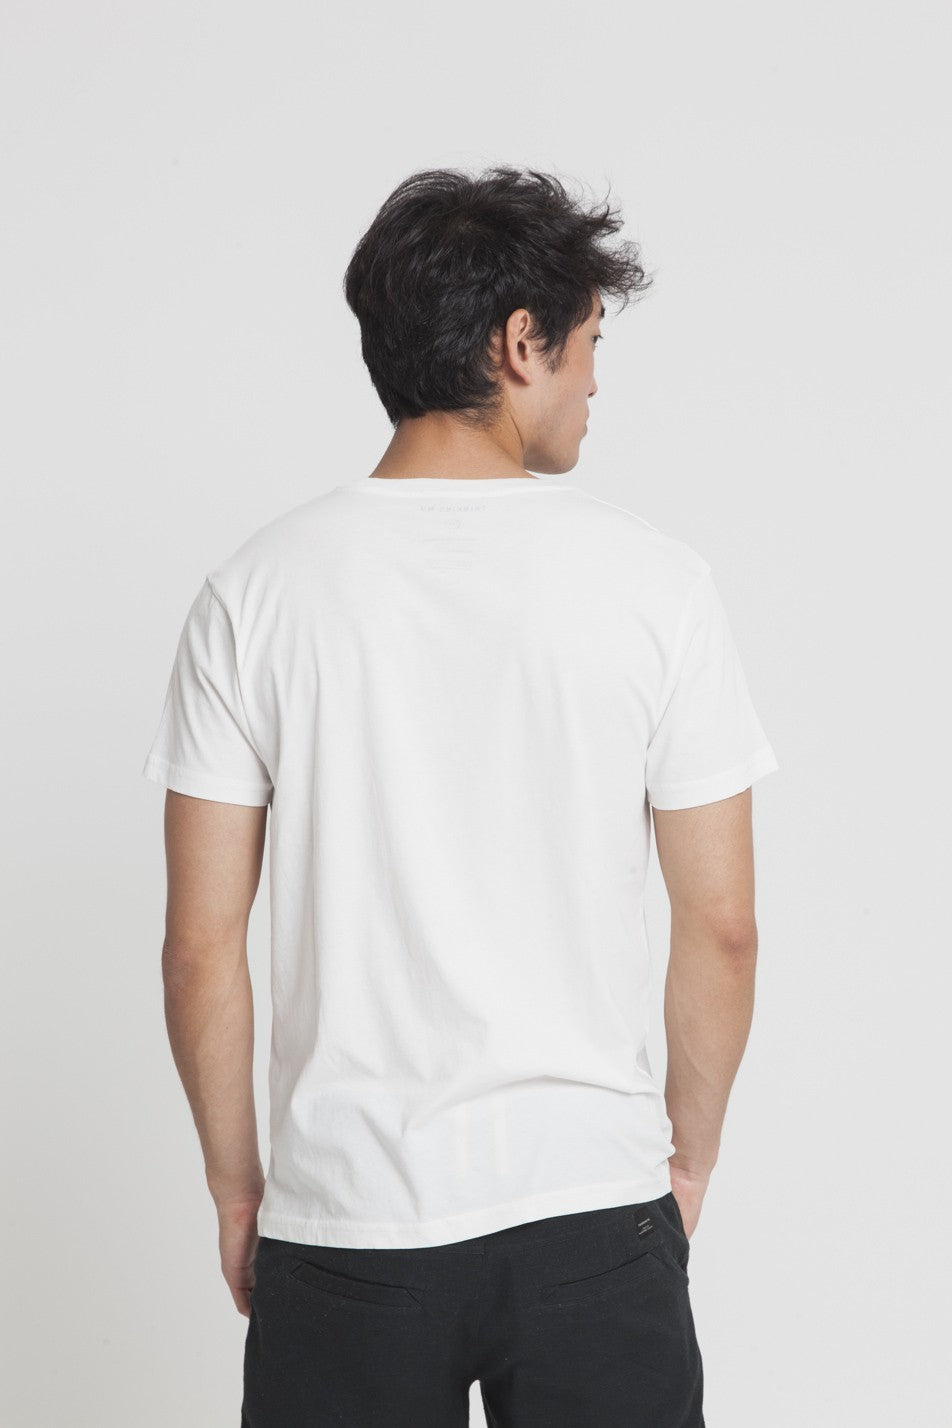 T-shirt imprimé blanc en coton bio - united humans - Thinking Mu num 1